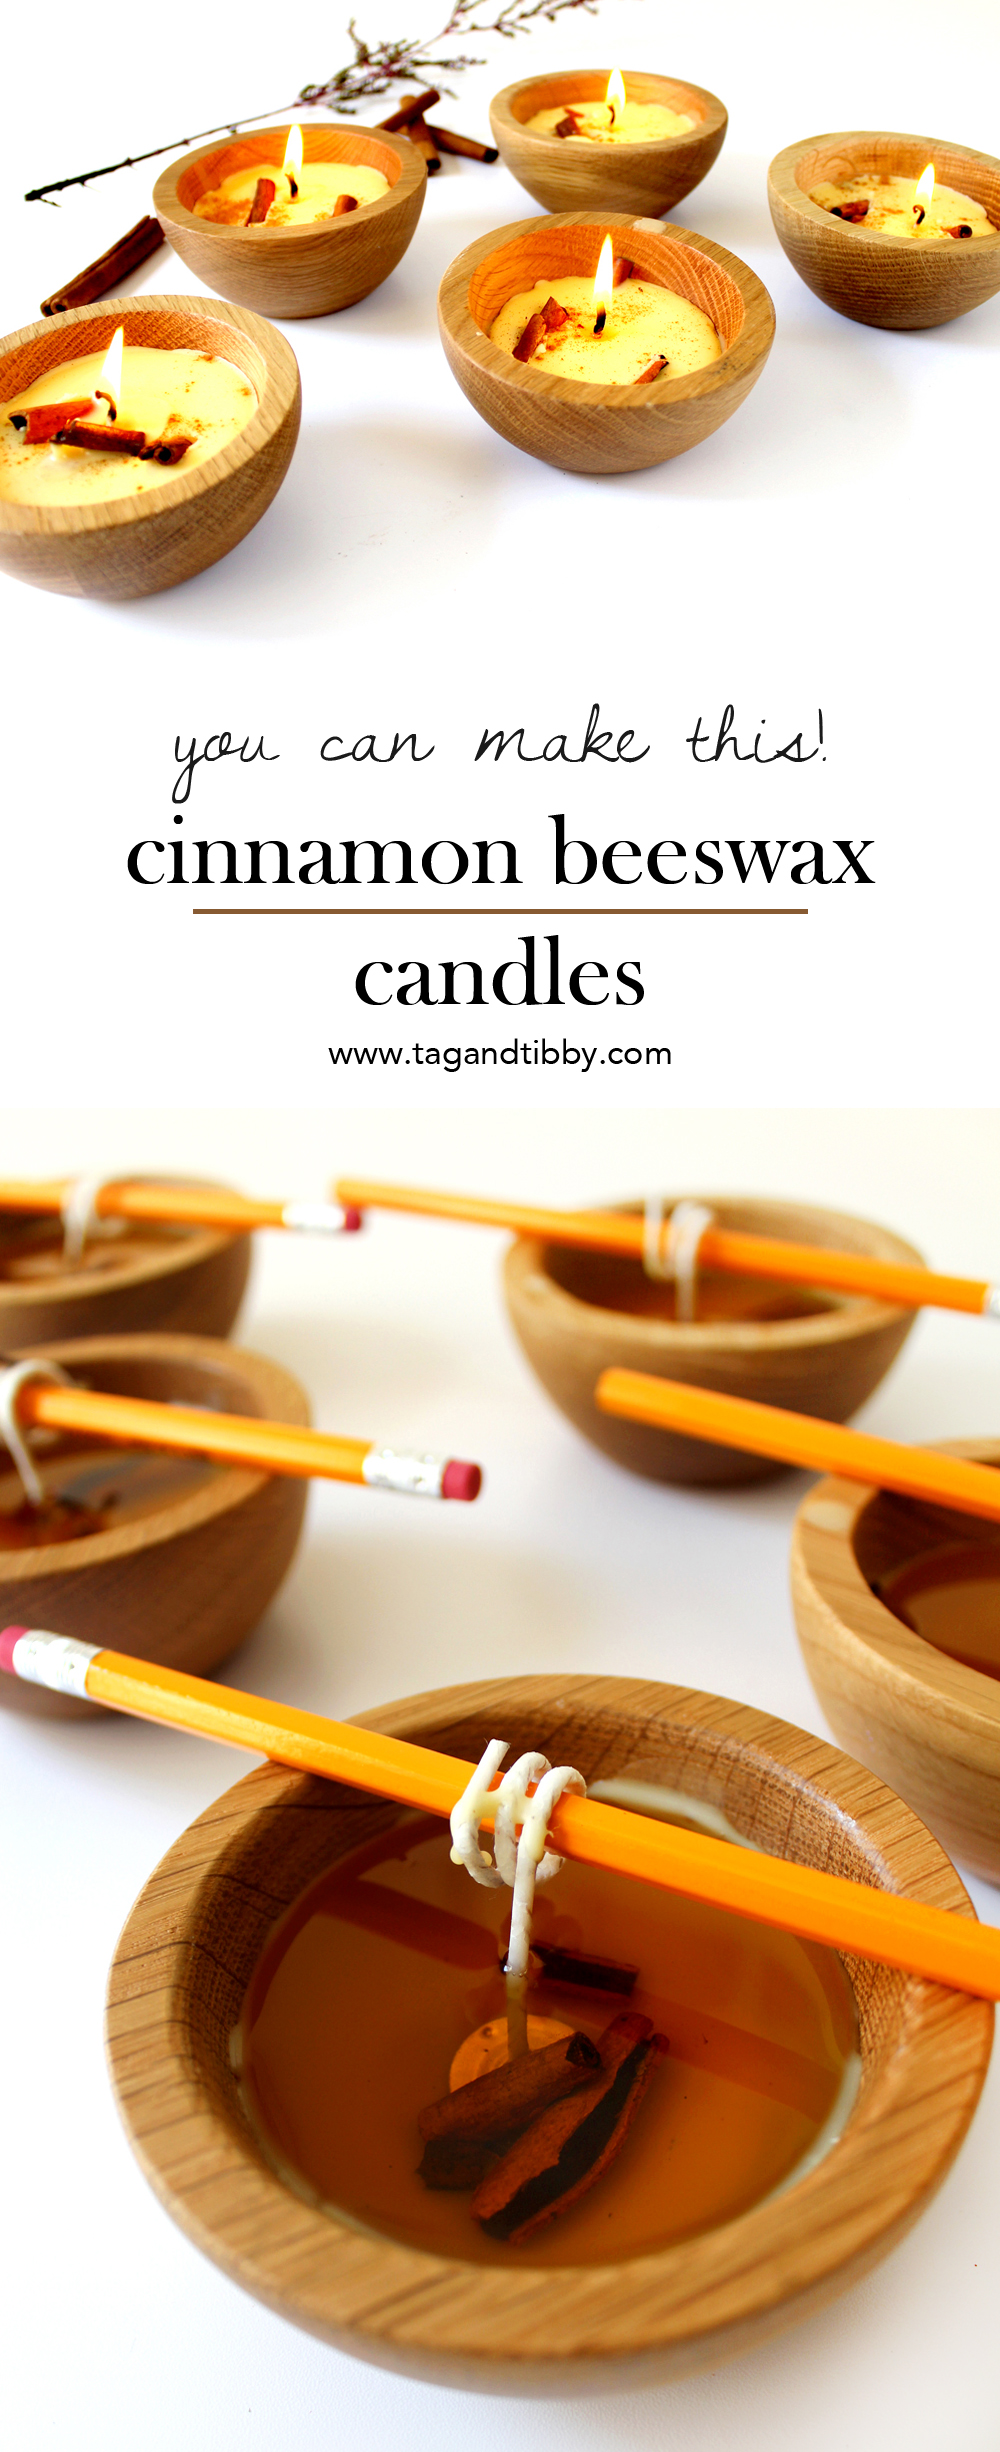 DIY tutorial for beeswax candles with cinnamon and clove